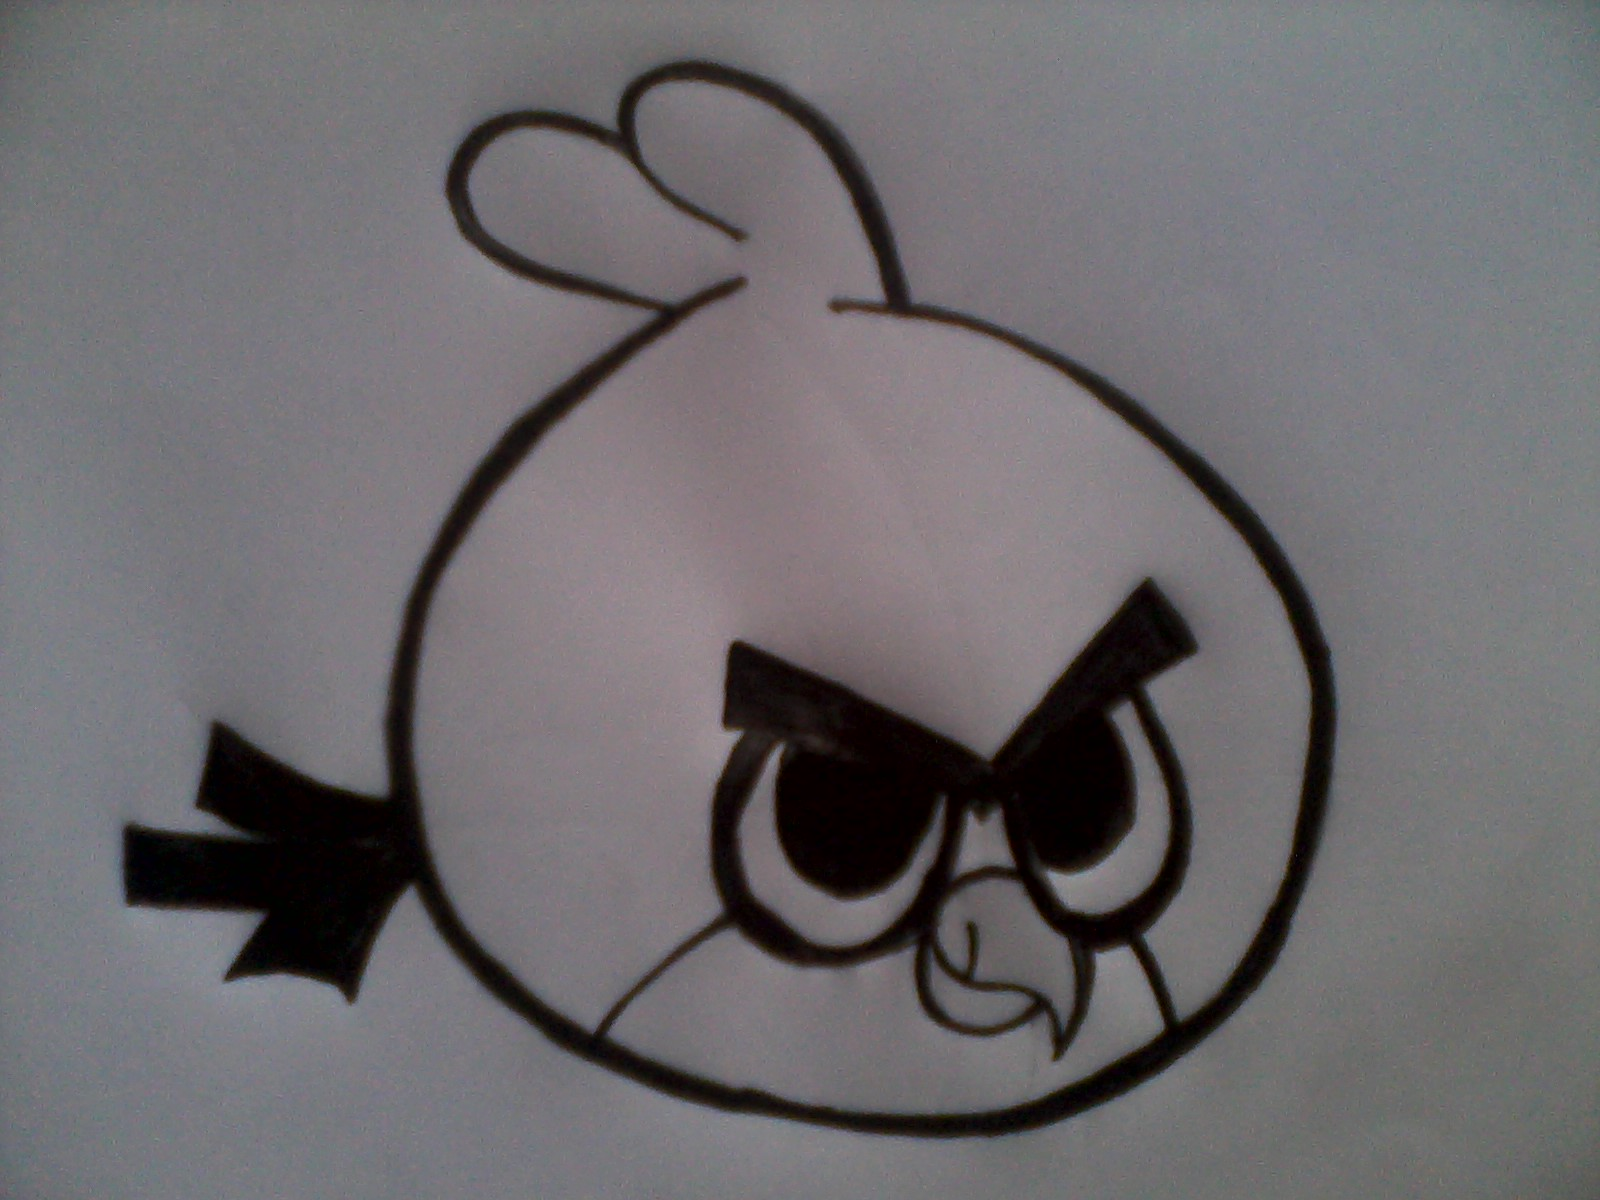 Art of sketches how to draw angry bird in 5 simple steps